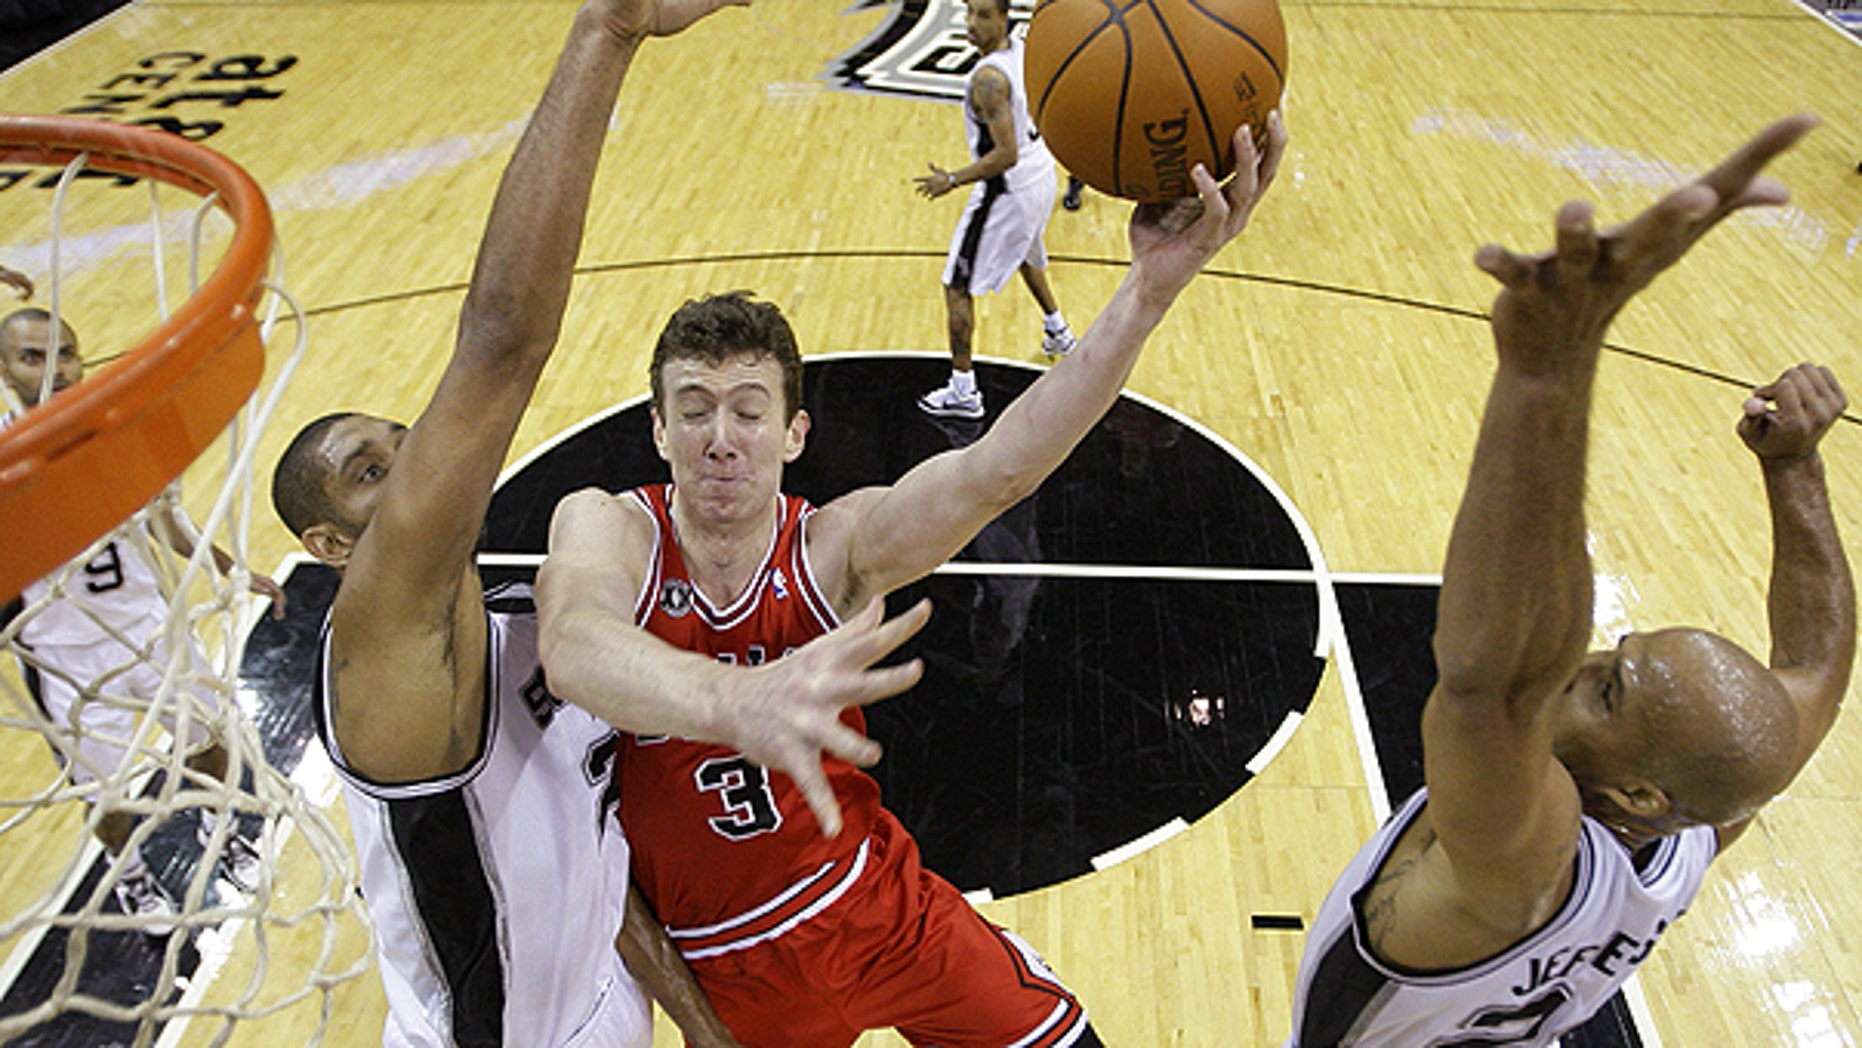 Nov. 17: Chicago Bulls' Omer Asik (3), of Turkey, goes to the basket between San Antonio Spurs' Tim Duncan, left, and Richard Jefferson during the second quarter of an NBA basketball game in San Antonio.